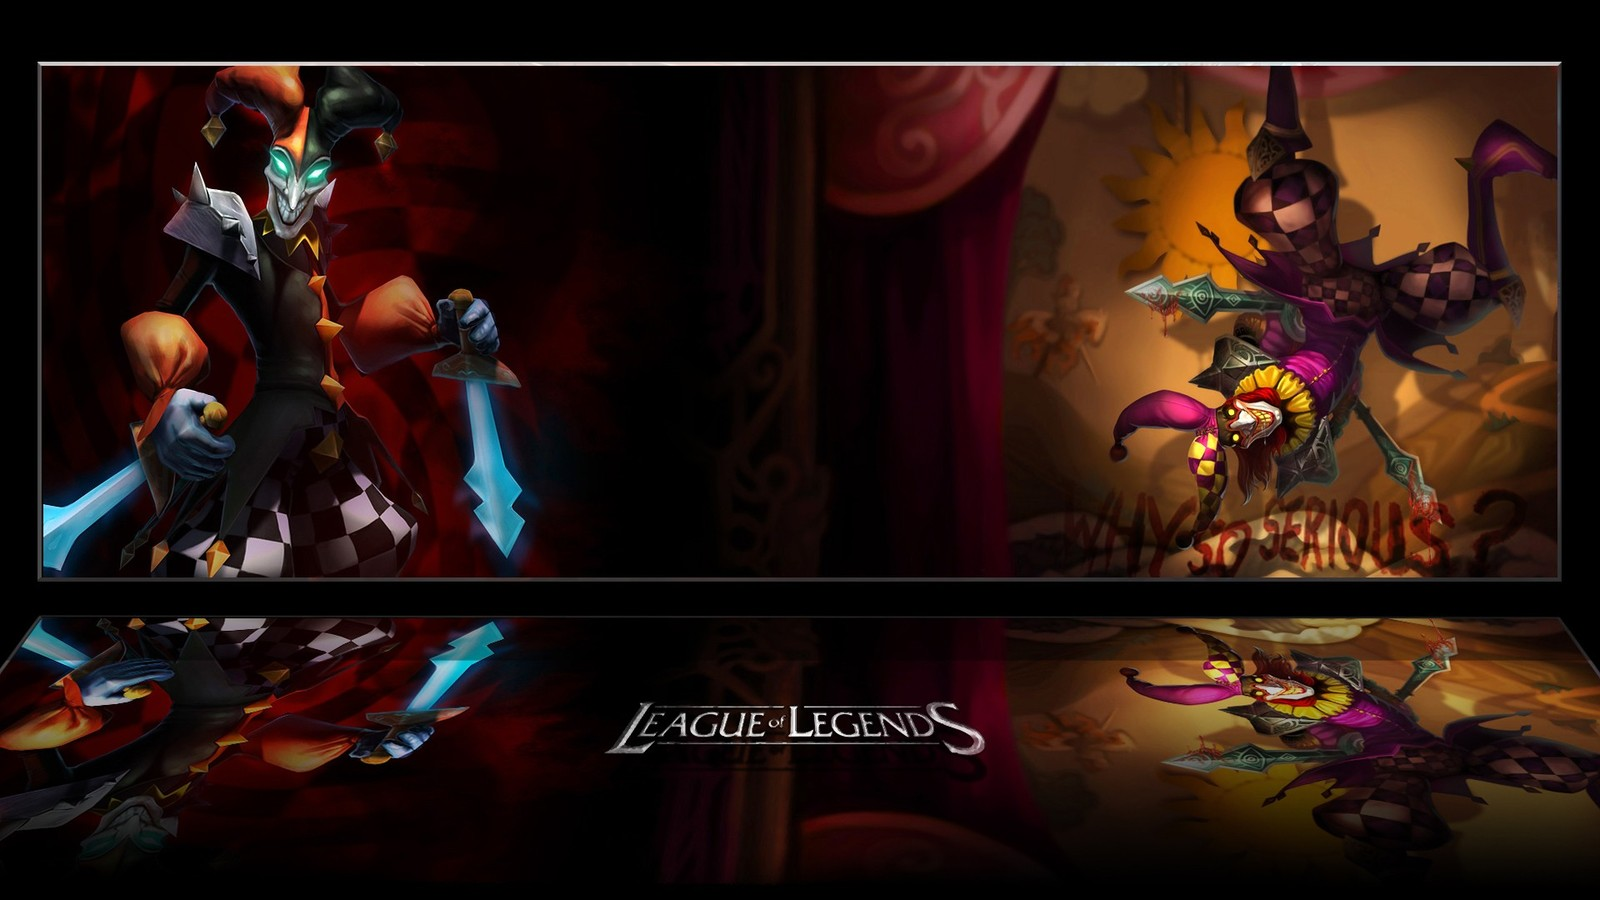 Dual Monitor Wallpaper League Of Legends: League Of Legends Wallpaper And Background Image